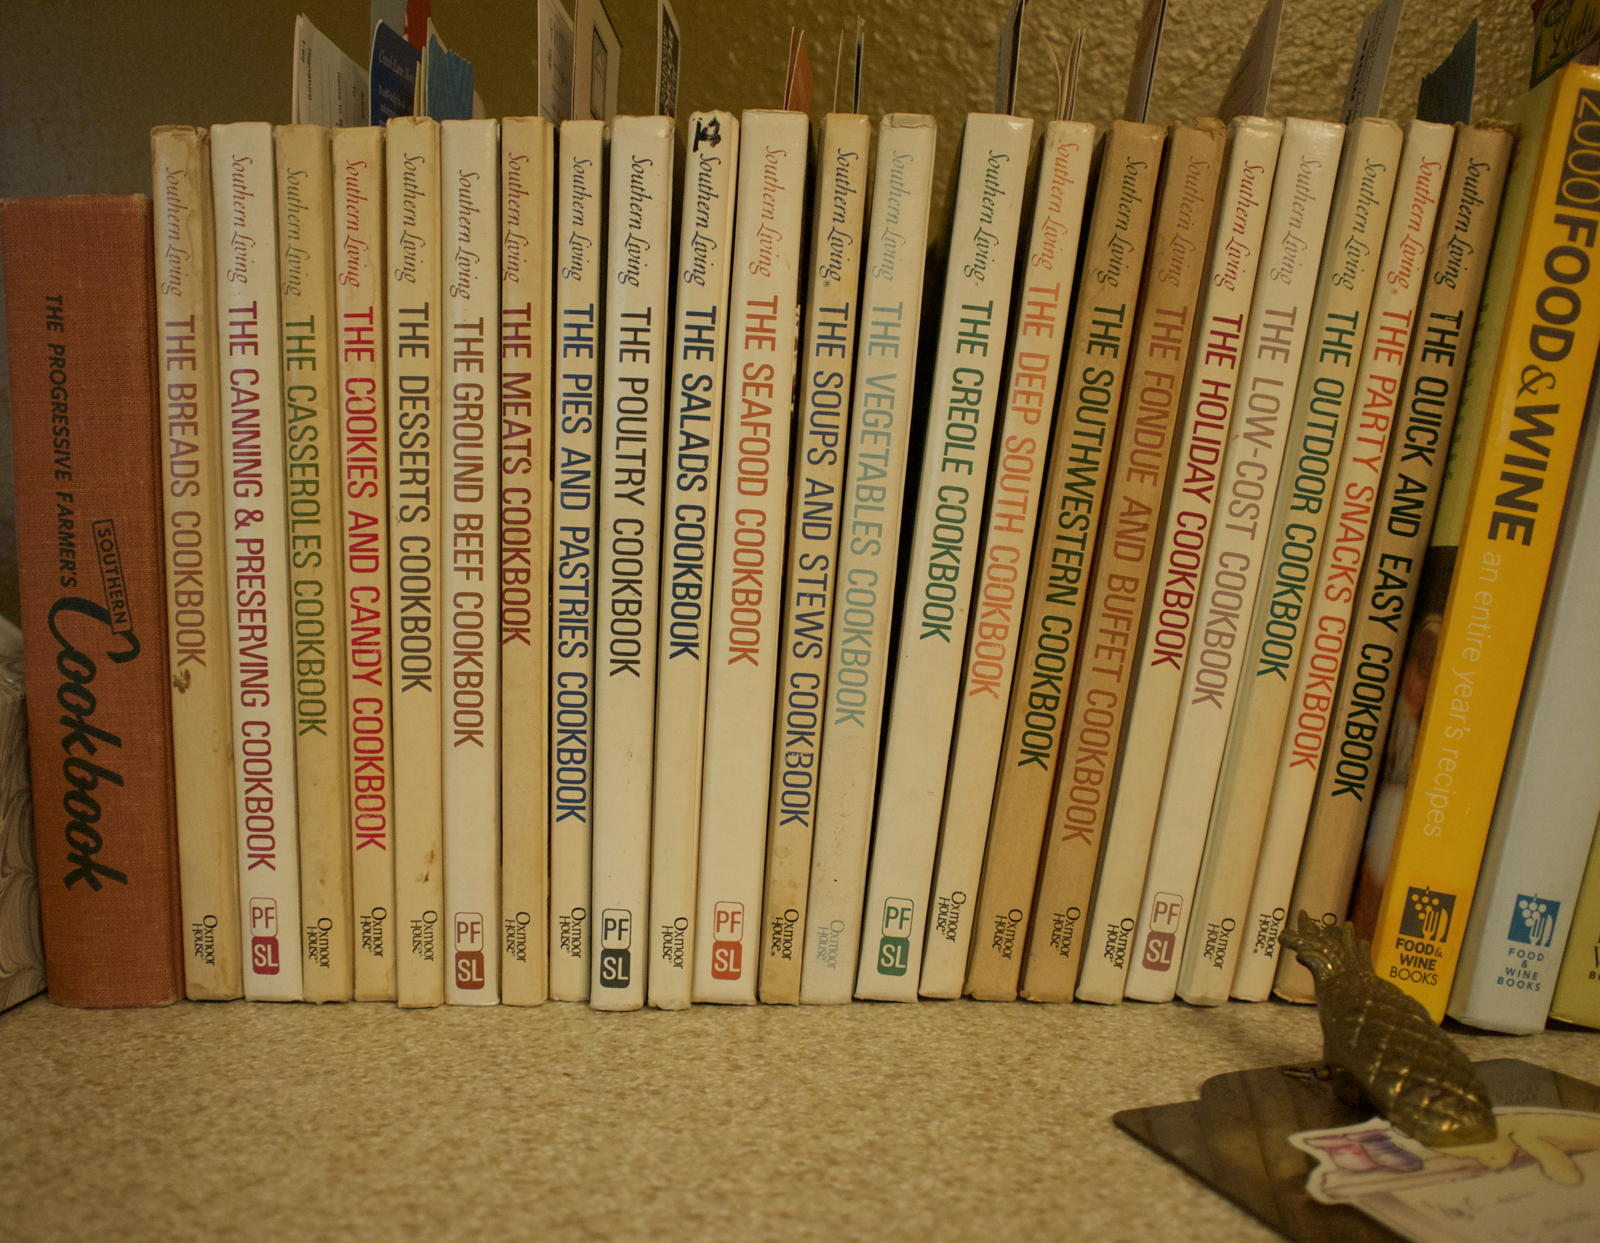 The Southern Living Cookbook Library